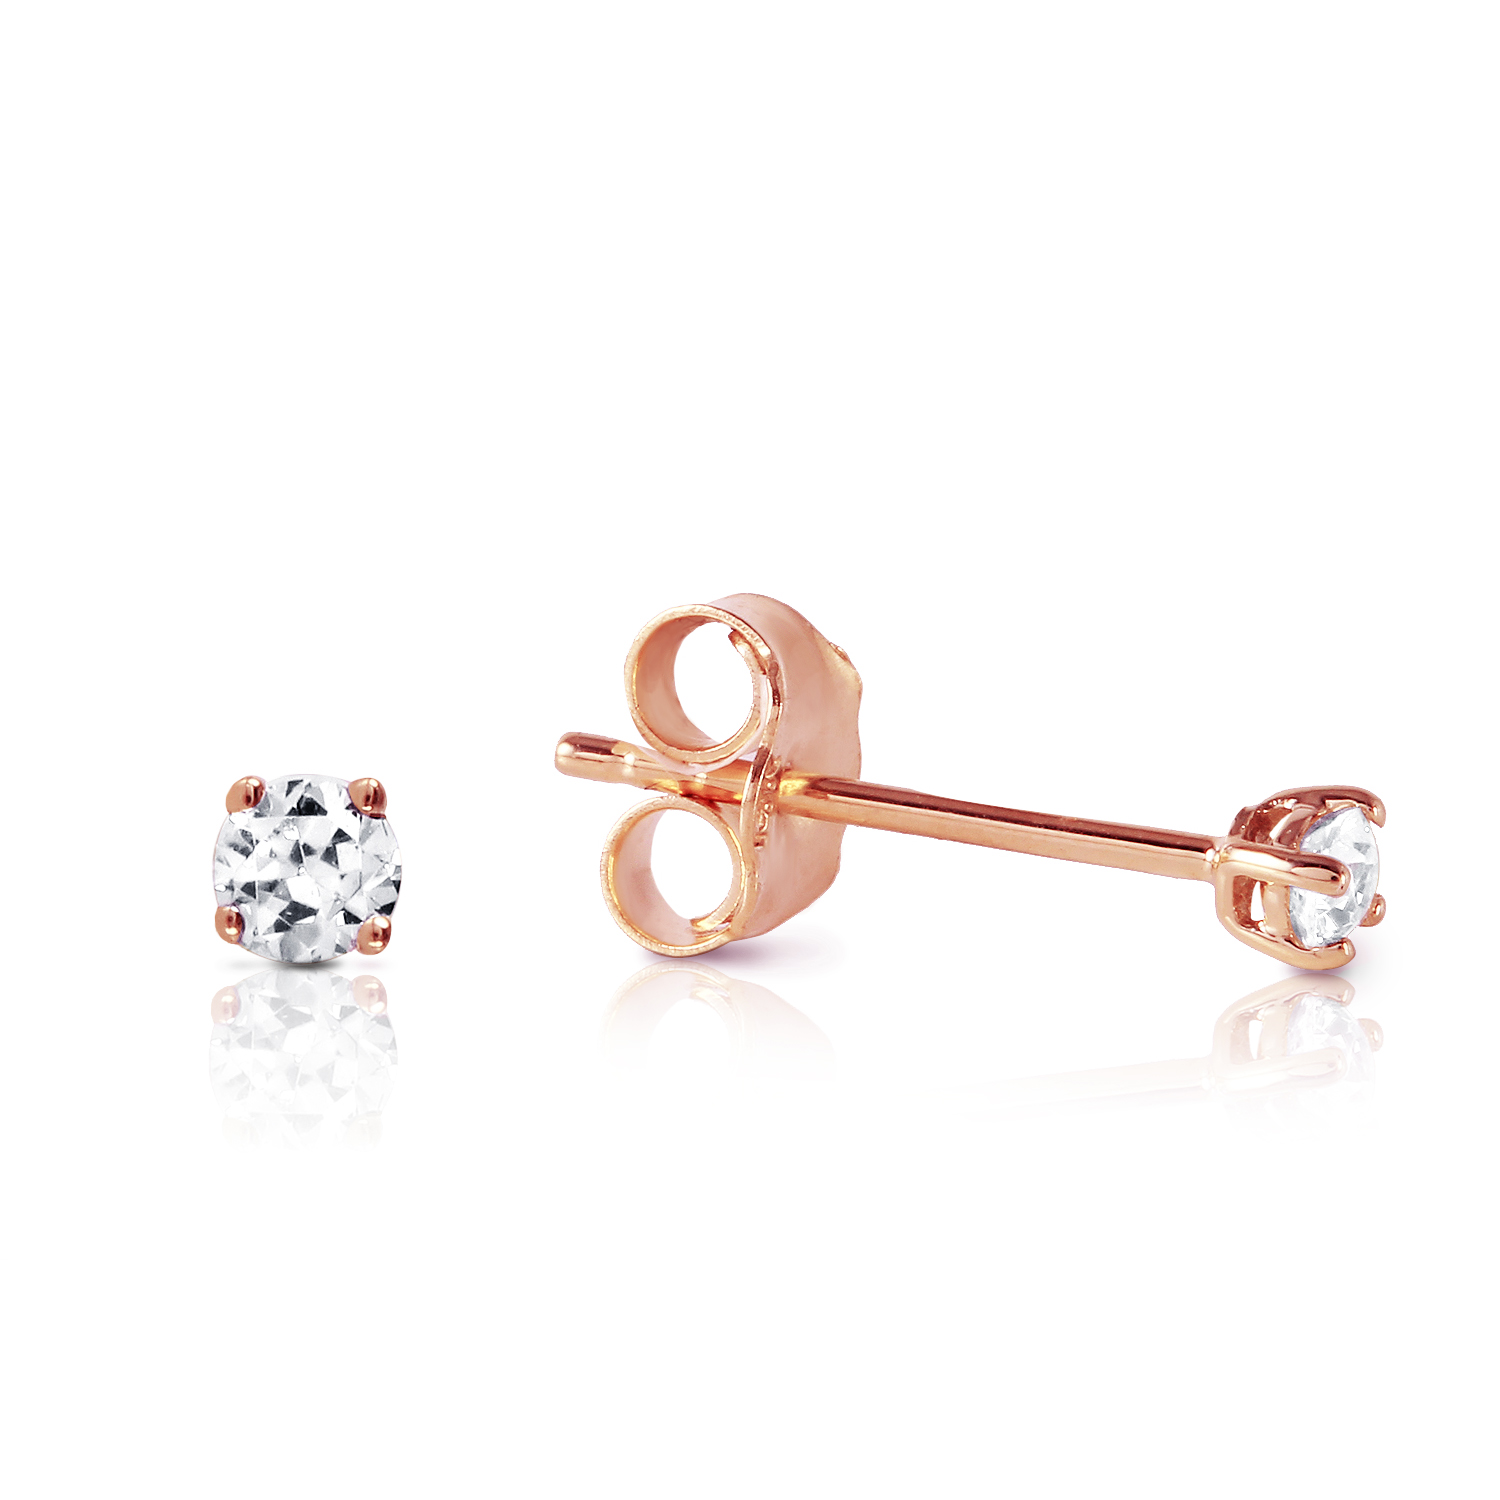 bd649f829 0.1 CTW 14K Solid Rose Gold Stud Earrings 0.10 Carat Natural Diamond ...